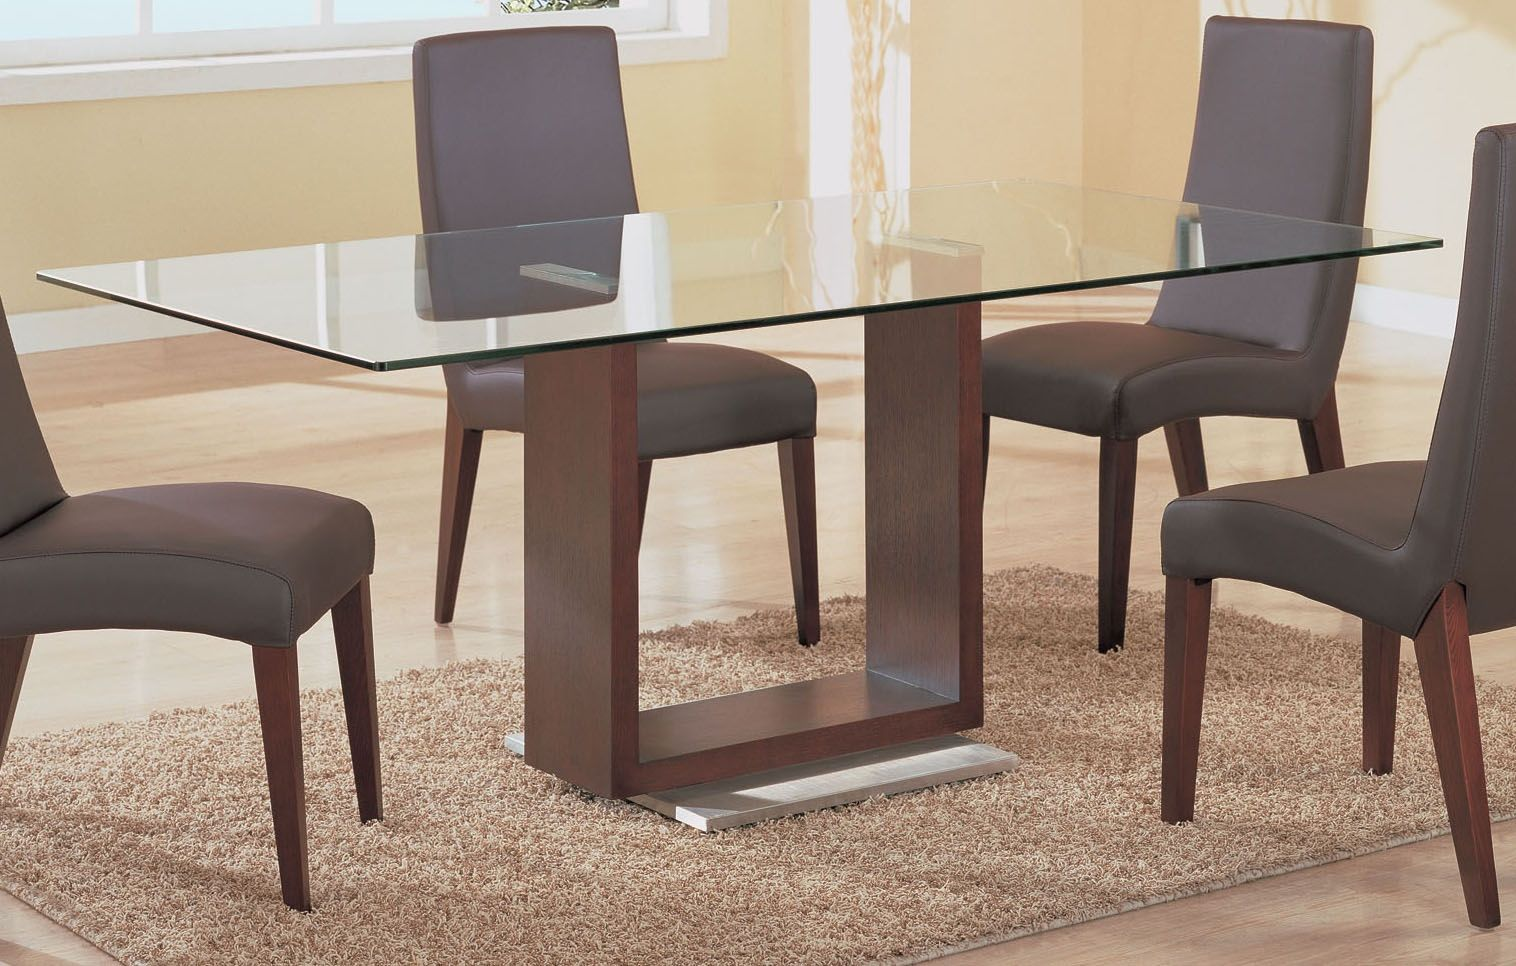 Glass Wood Dining Table With dining table bases for glass tops wood dining table bases are the